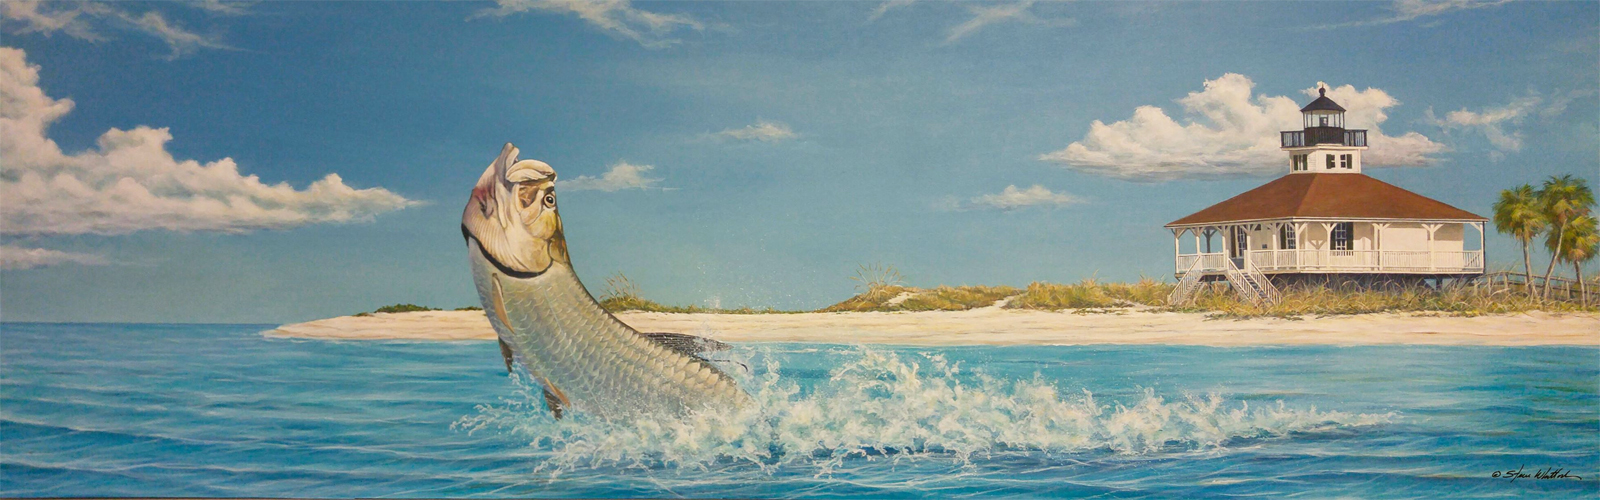 Boca Grande Florida tarpon jumping art by Steve Whitlock